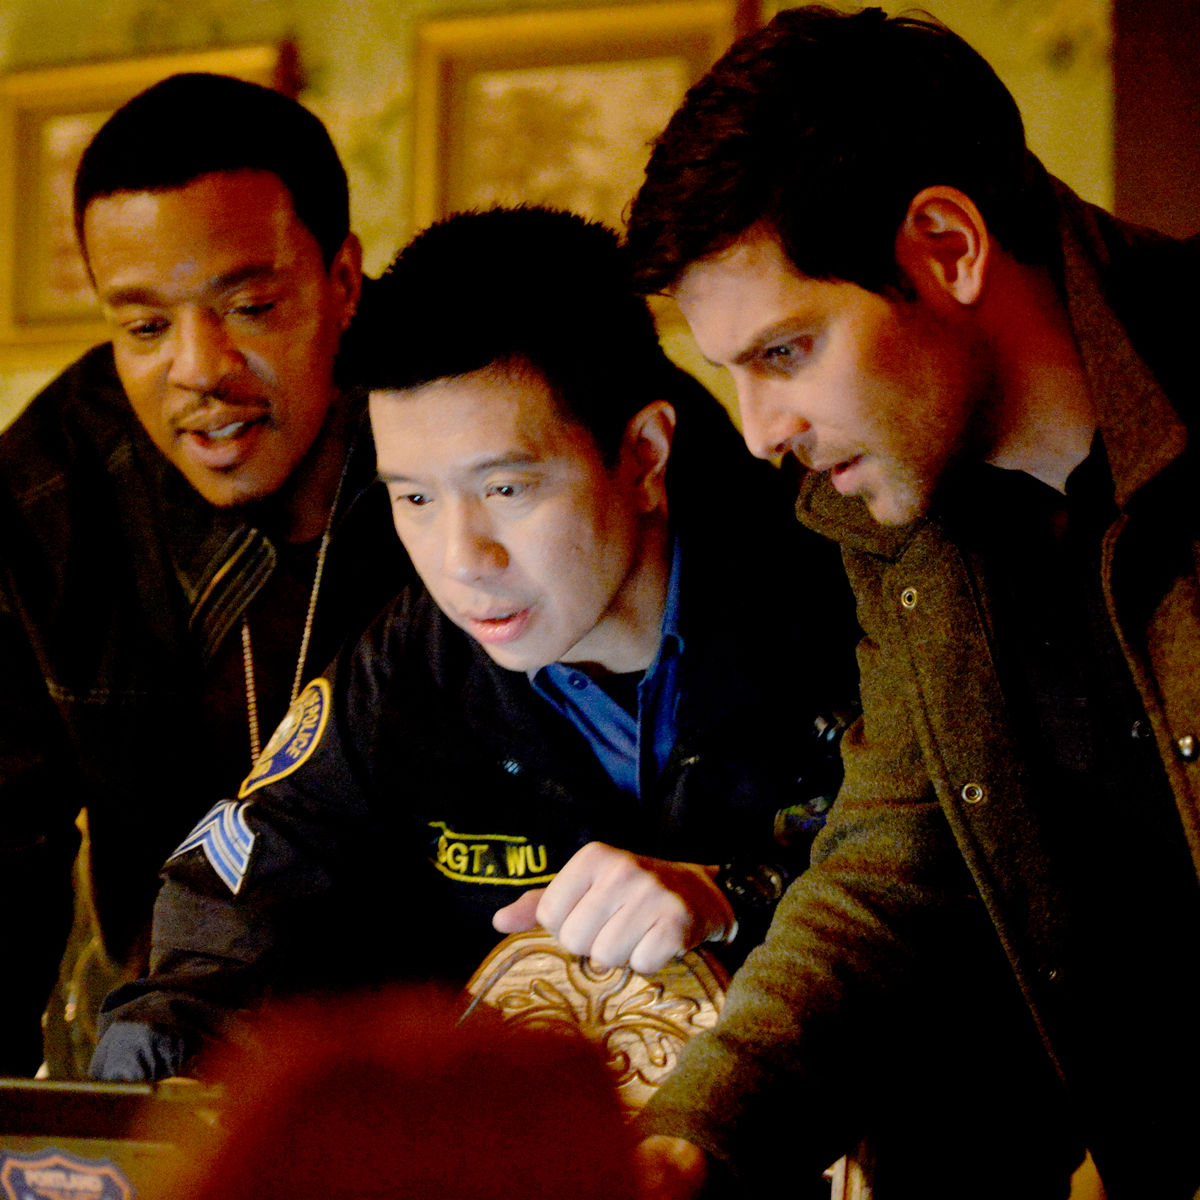 Grimm: a spin-off is in development